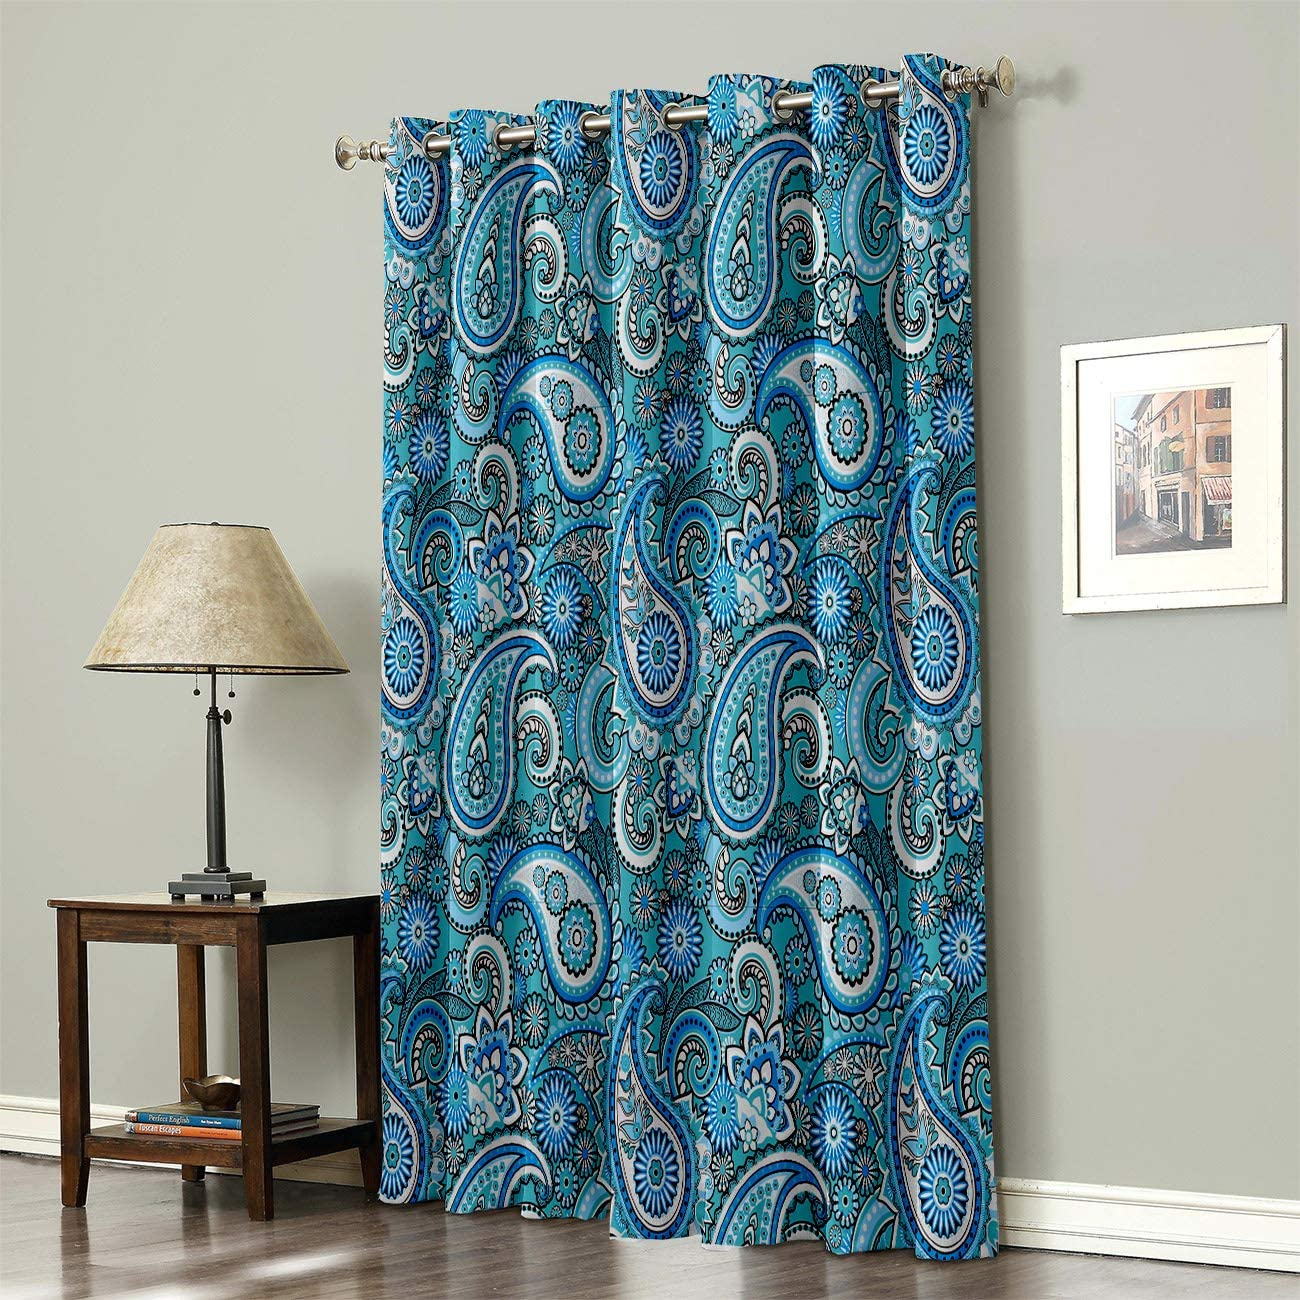 Fantasy Staring Thermal Insulated Blackout Curtain for Bed Room- Blue Floral Pattern Paisley Design Darkening Blackout Curtain with Grommet, 1 Panel 52 x 96